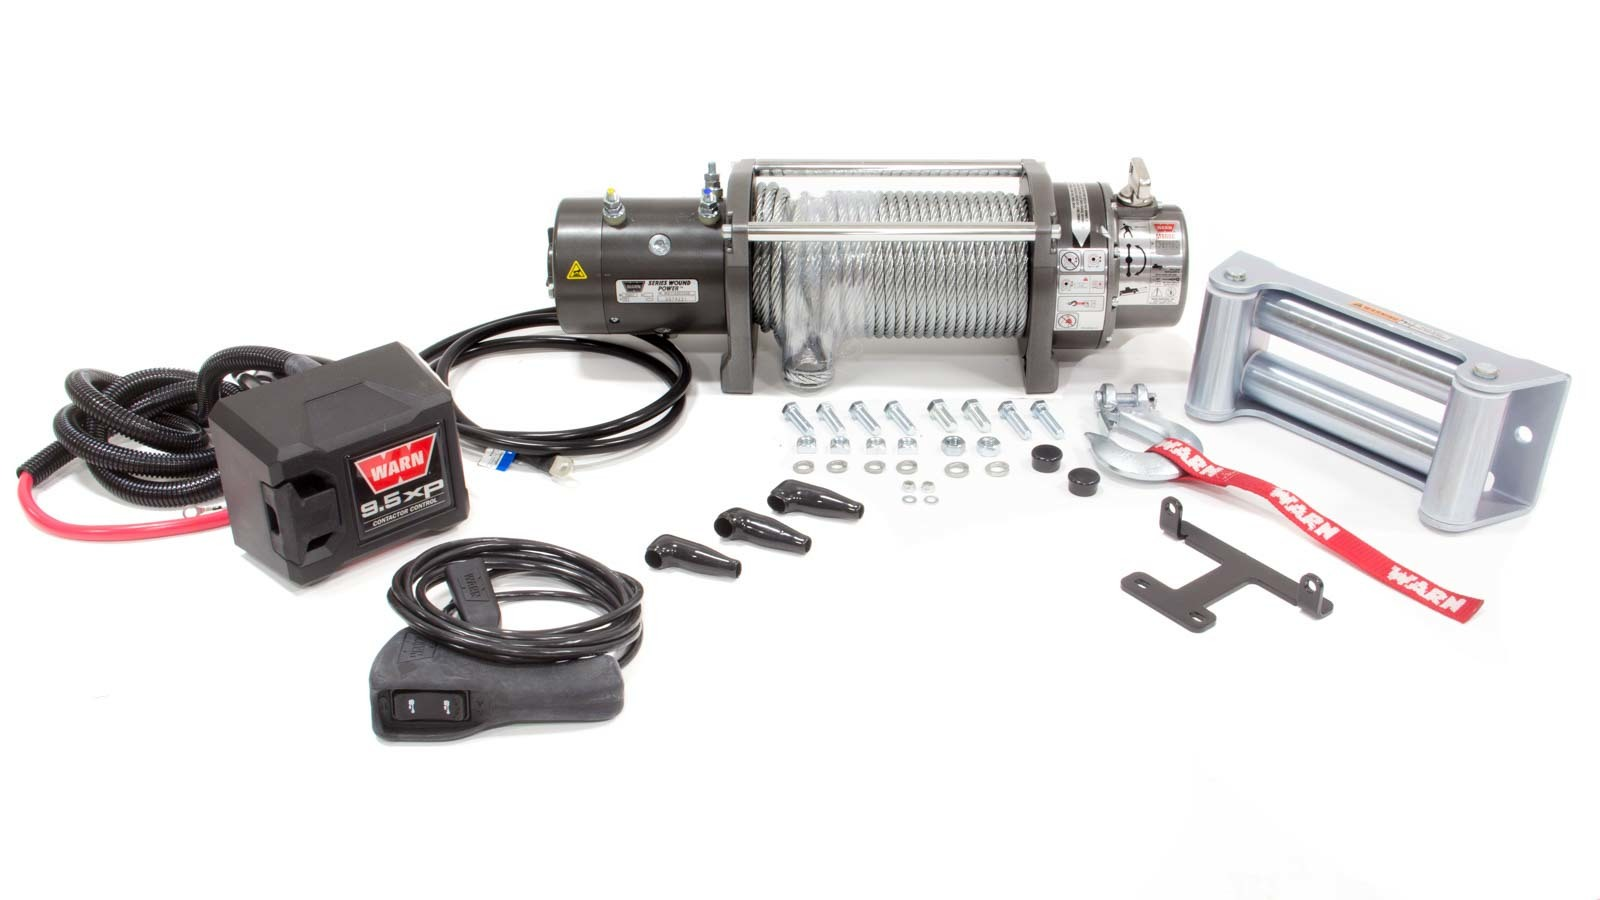 Warn 26502 Winch, M8000, 8000 lb Capacity, Roller Fairlead, 12 ft Remote, 5/16 in x 100 ft Steel Rope, 12V, Kit